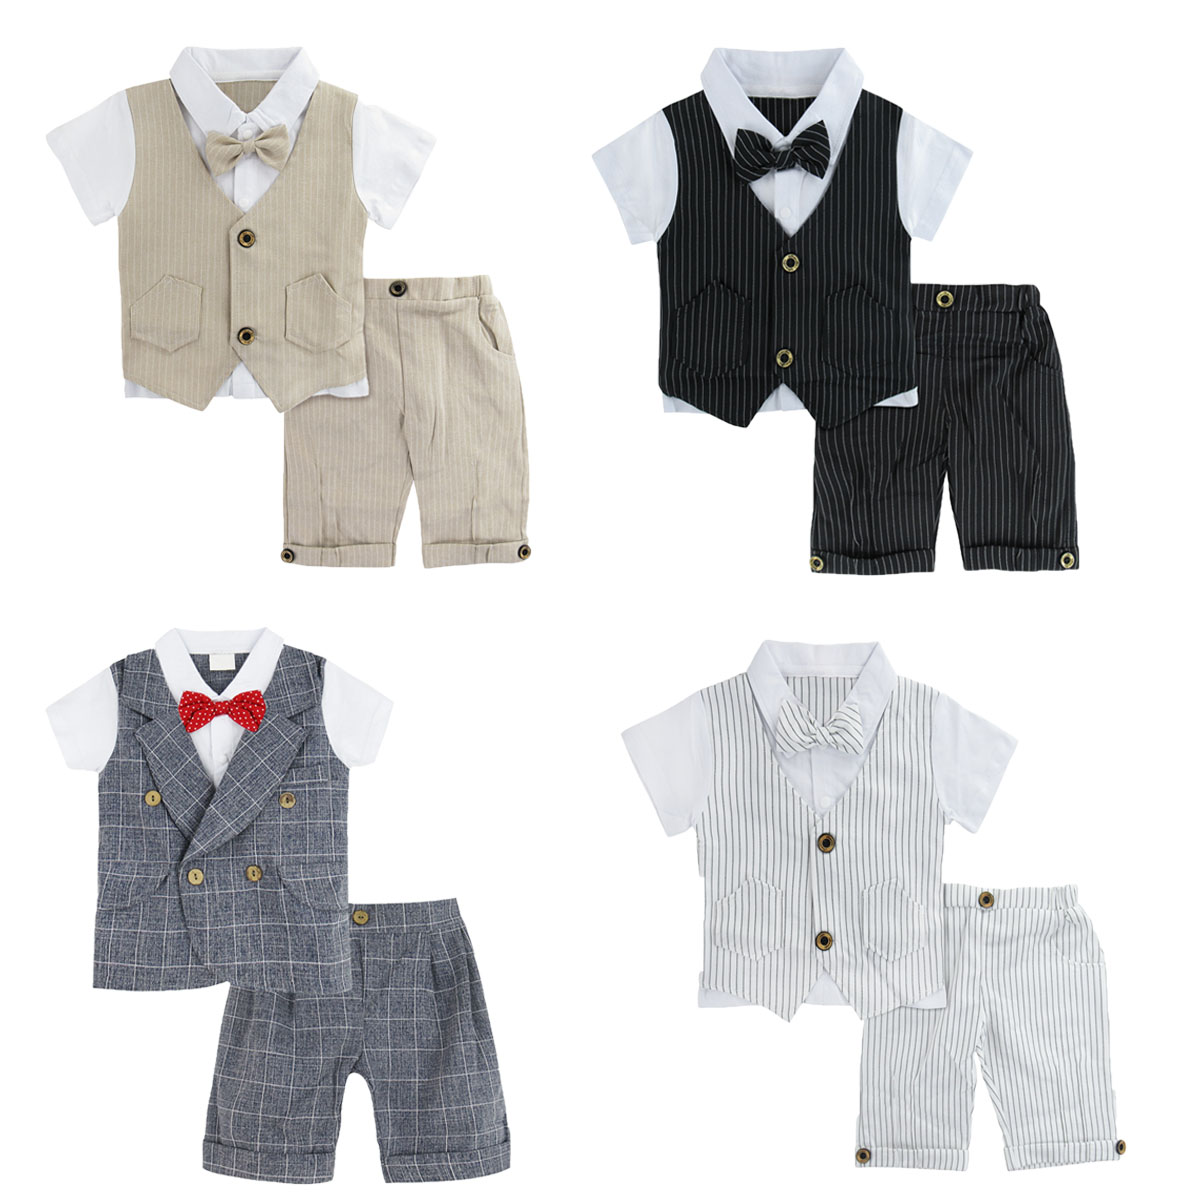 Baby Boy Gentleman Clothing Set Infant  Baptism Wedding Birthday Party Gift Formal Outfit Toddler Shirt  Pants With Bow Tie Suit